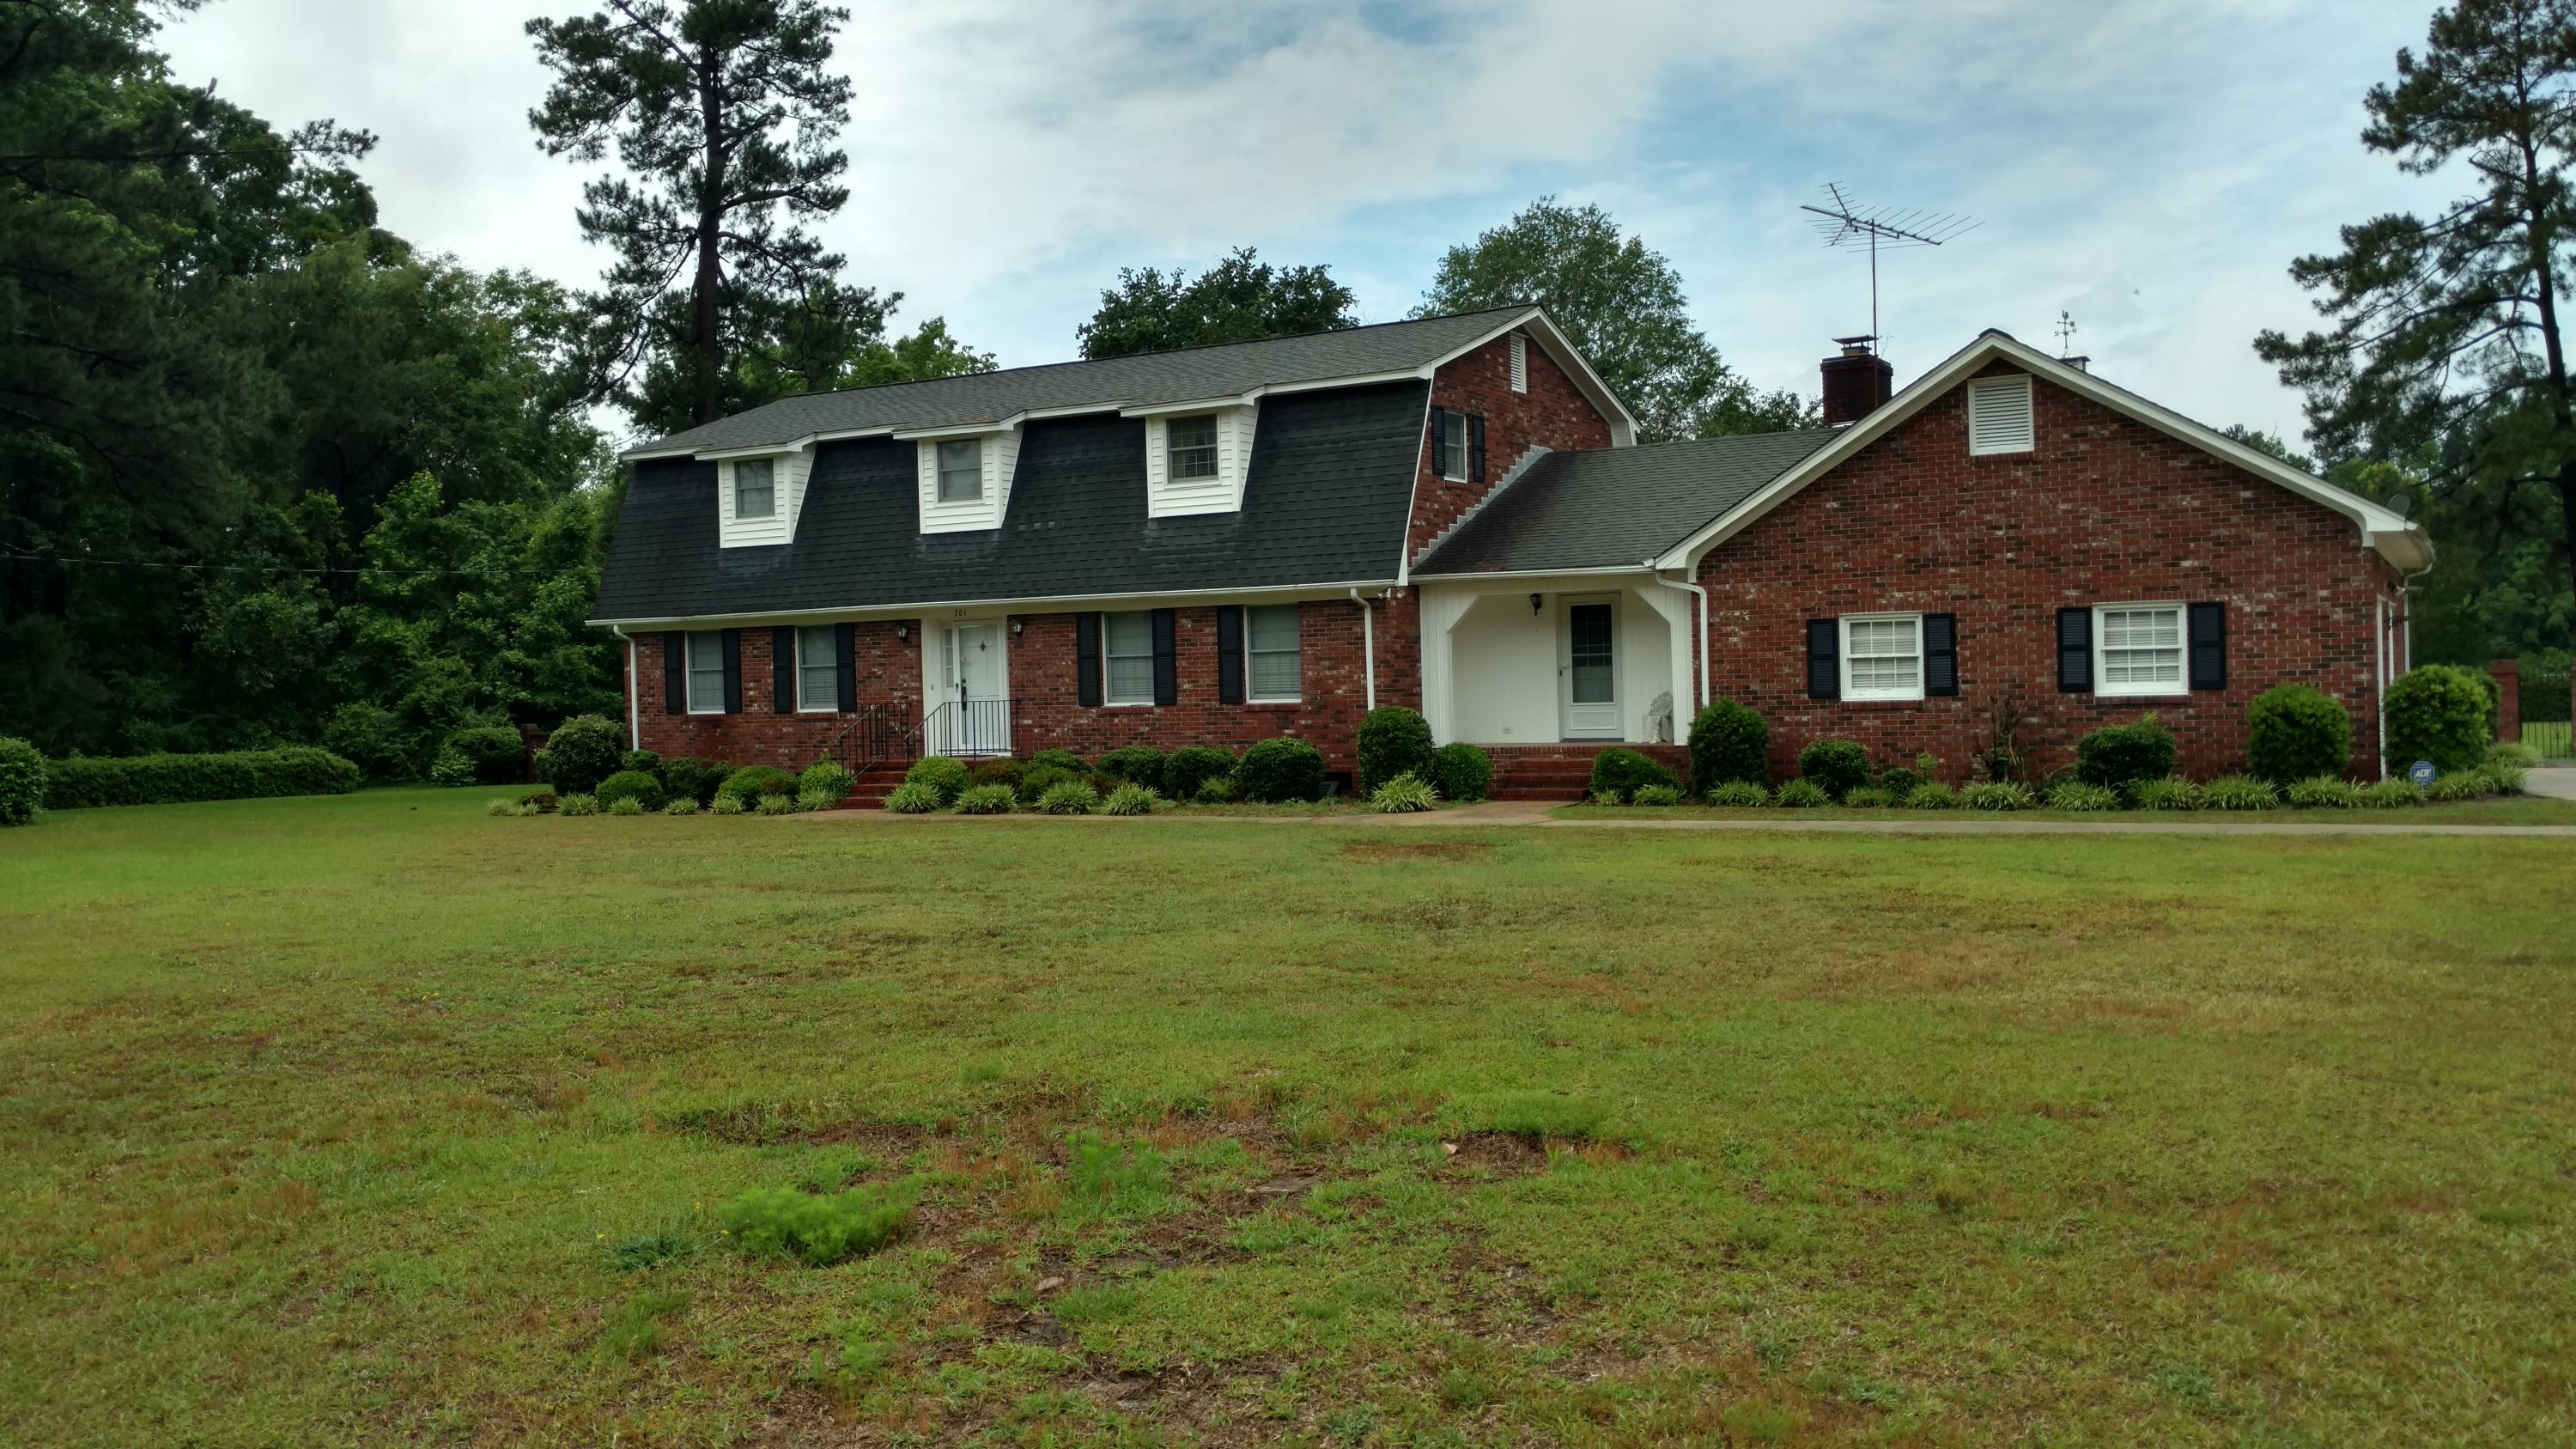 Photo of 201 Whetsell St, Reevesville, SC 29471